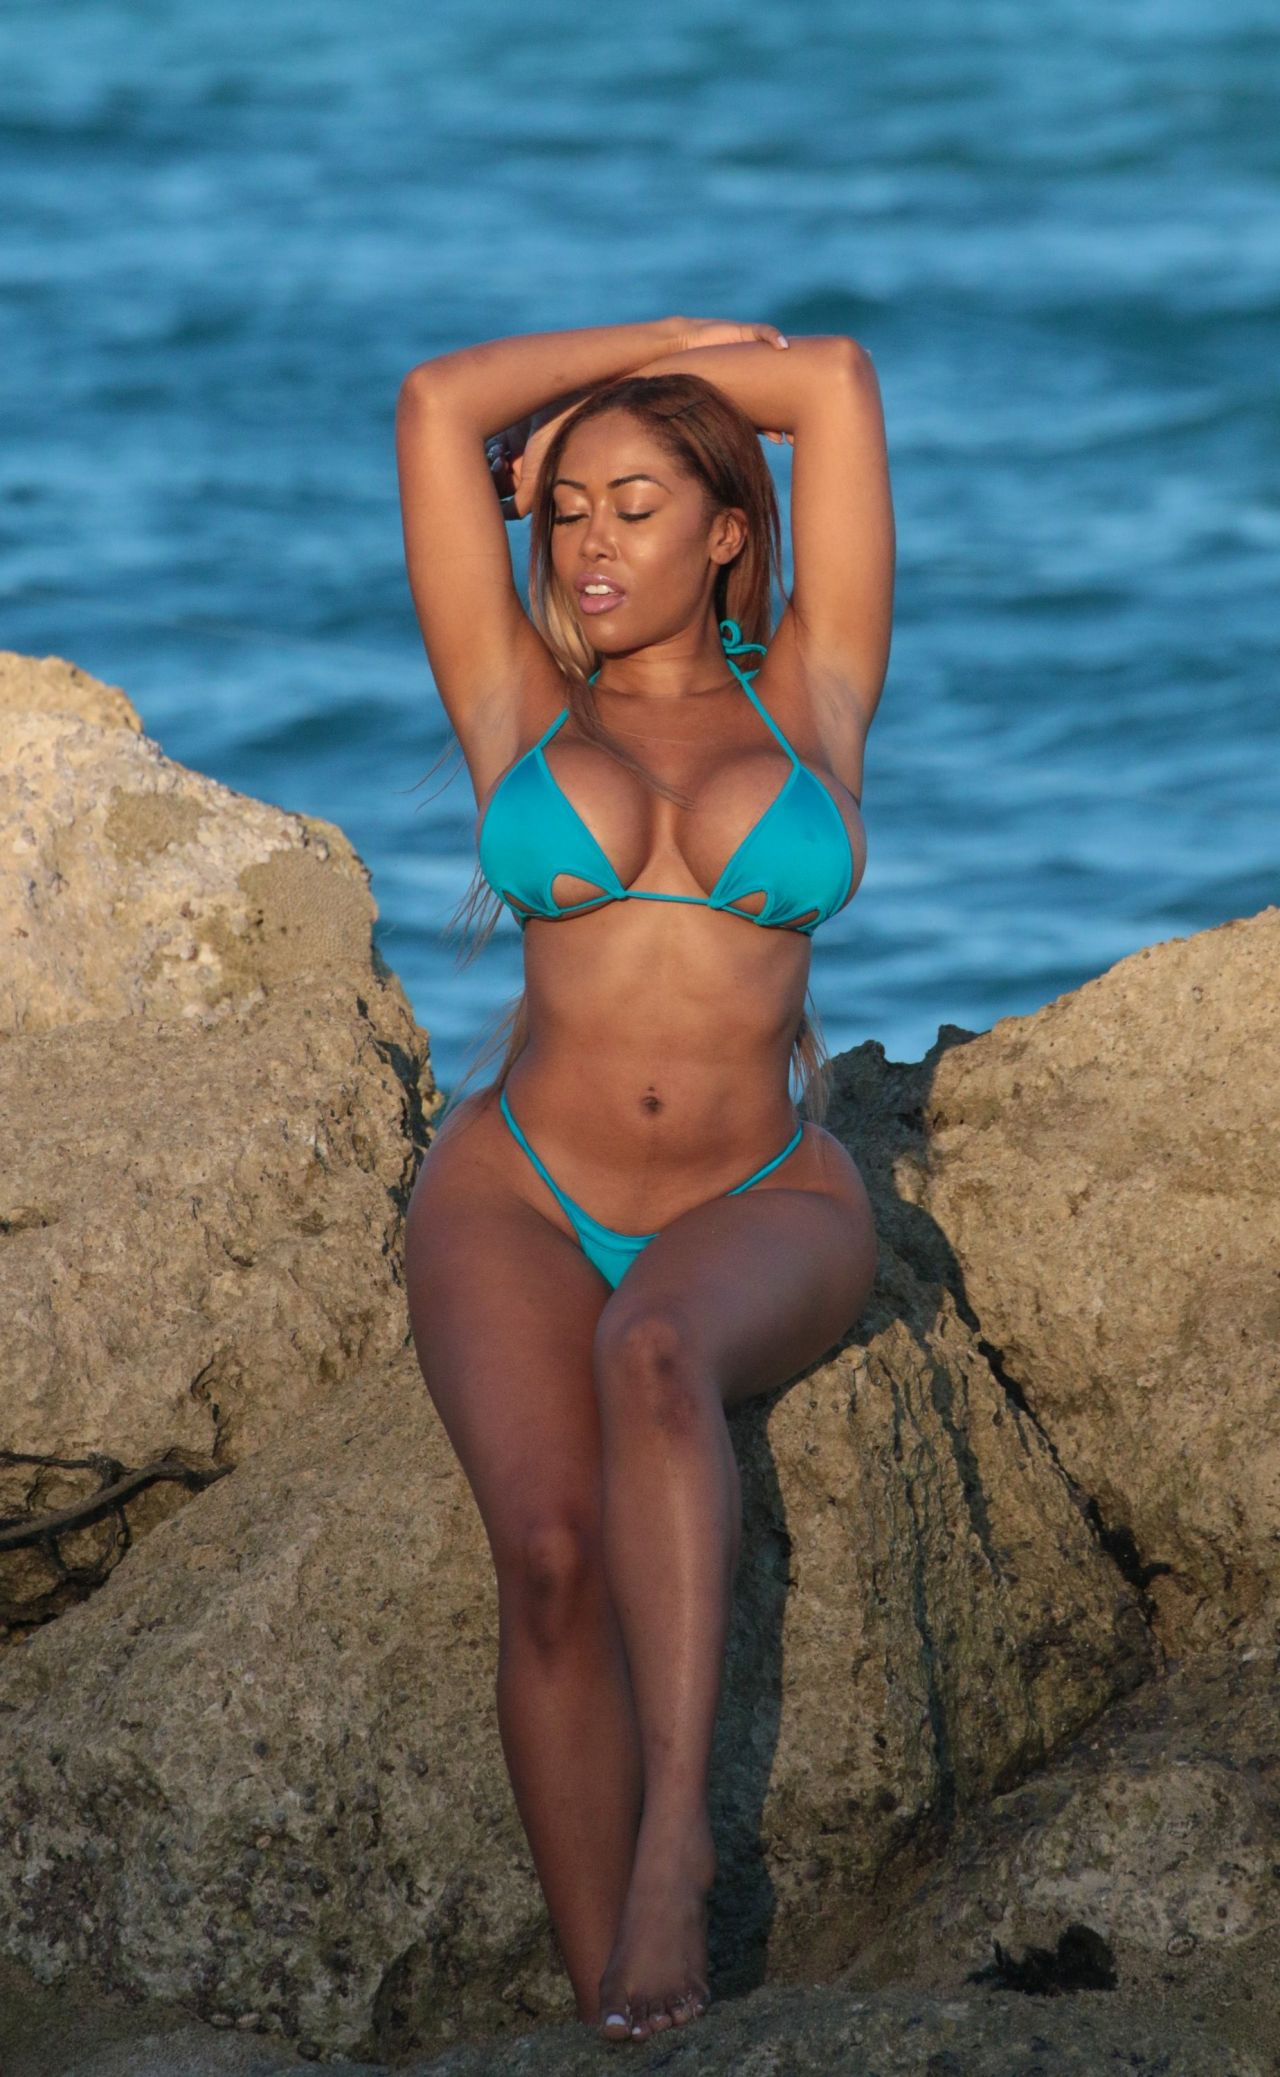 Moriah Mills in Bikini Photoshoot on the beach in Miami Pic 10 of 35